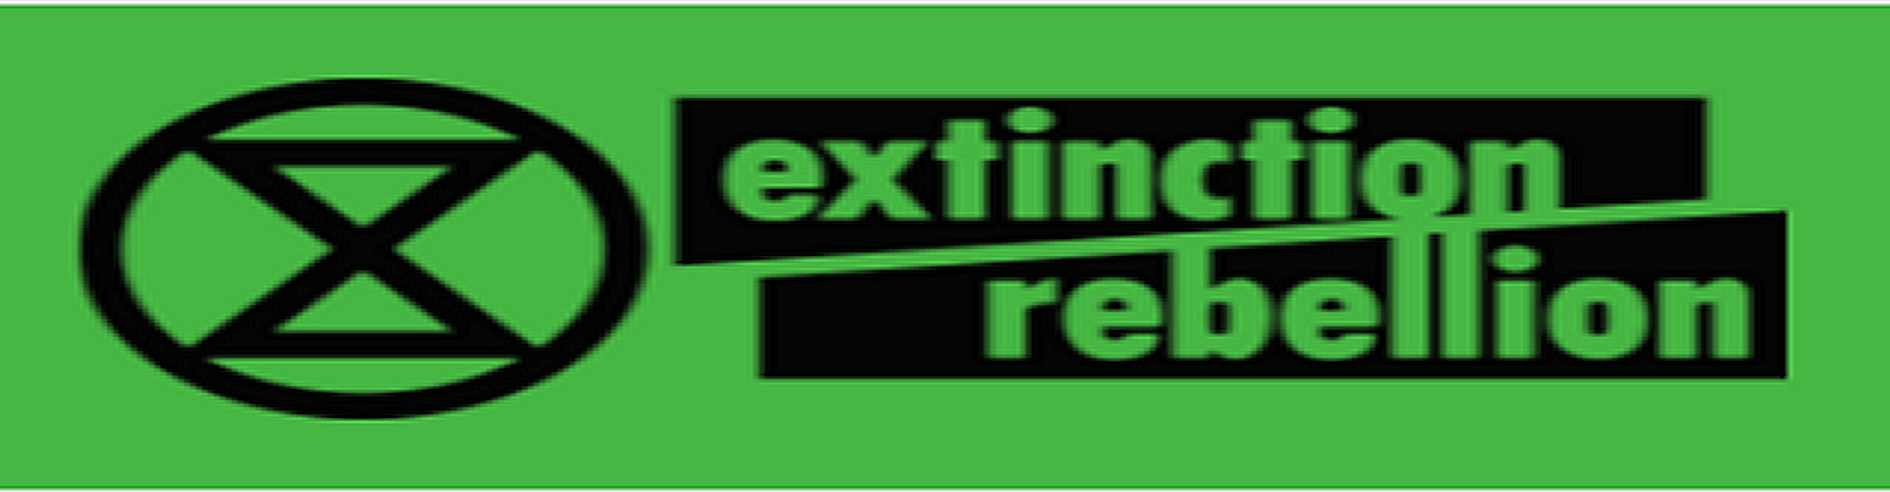 exctinction-rebellion